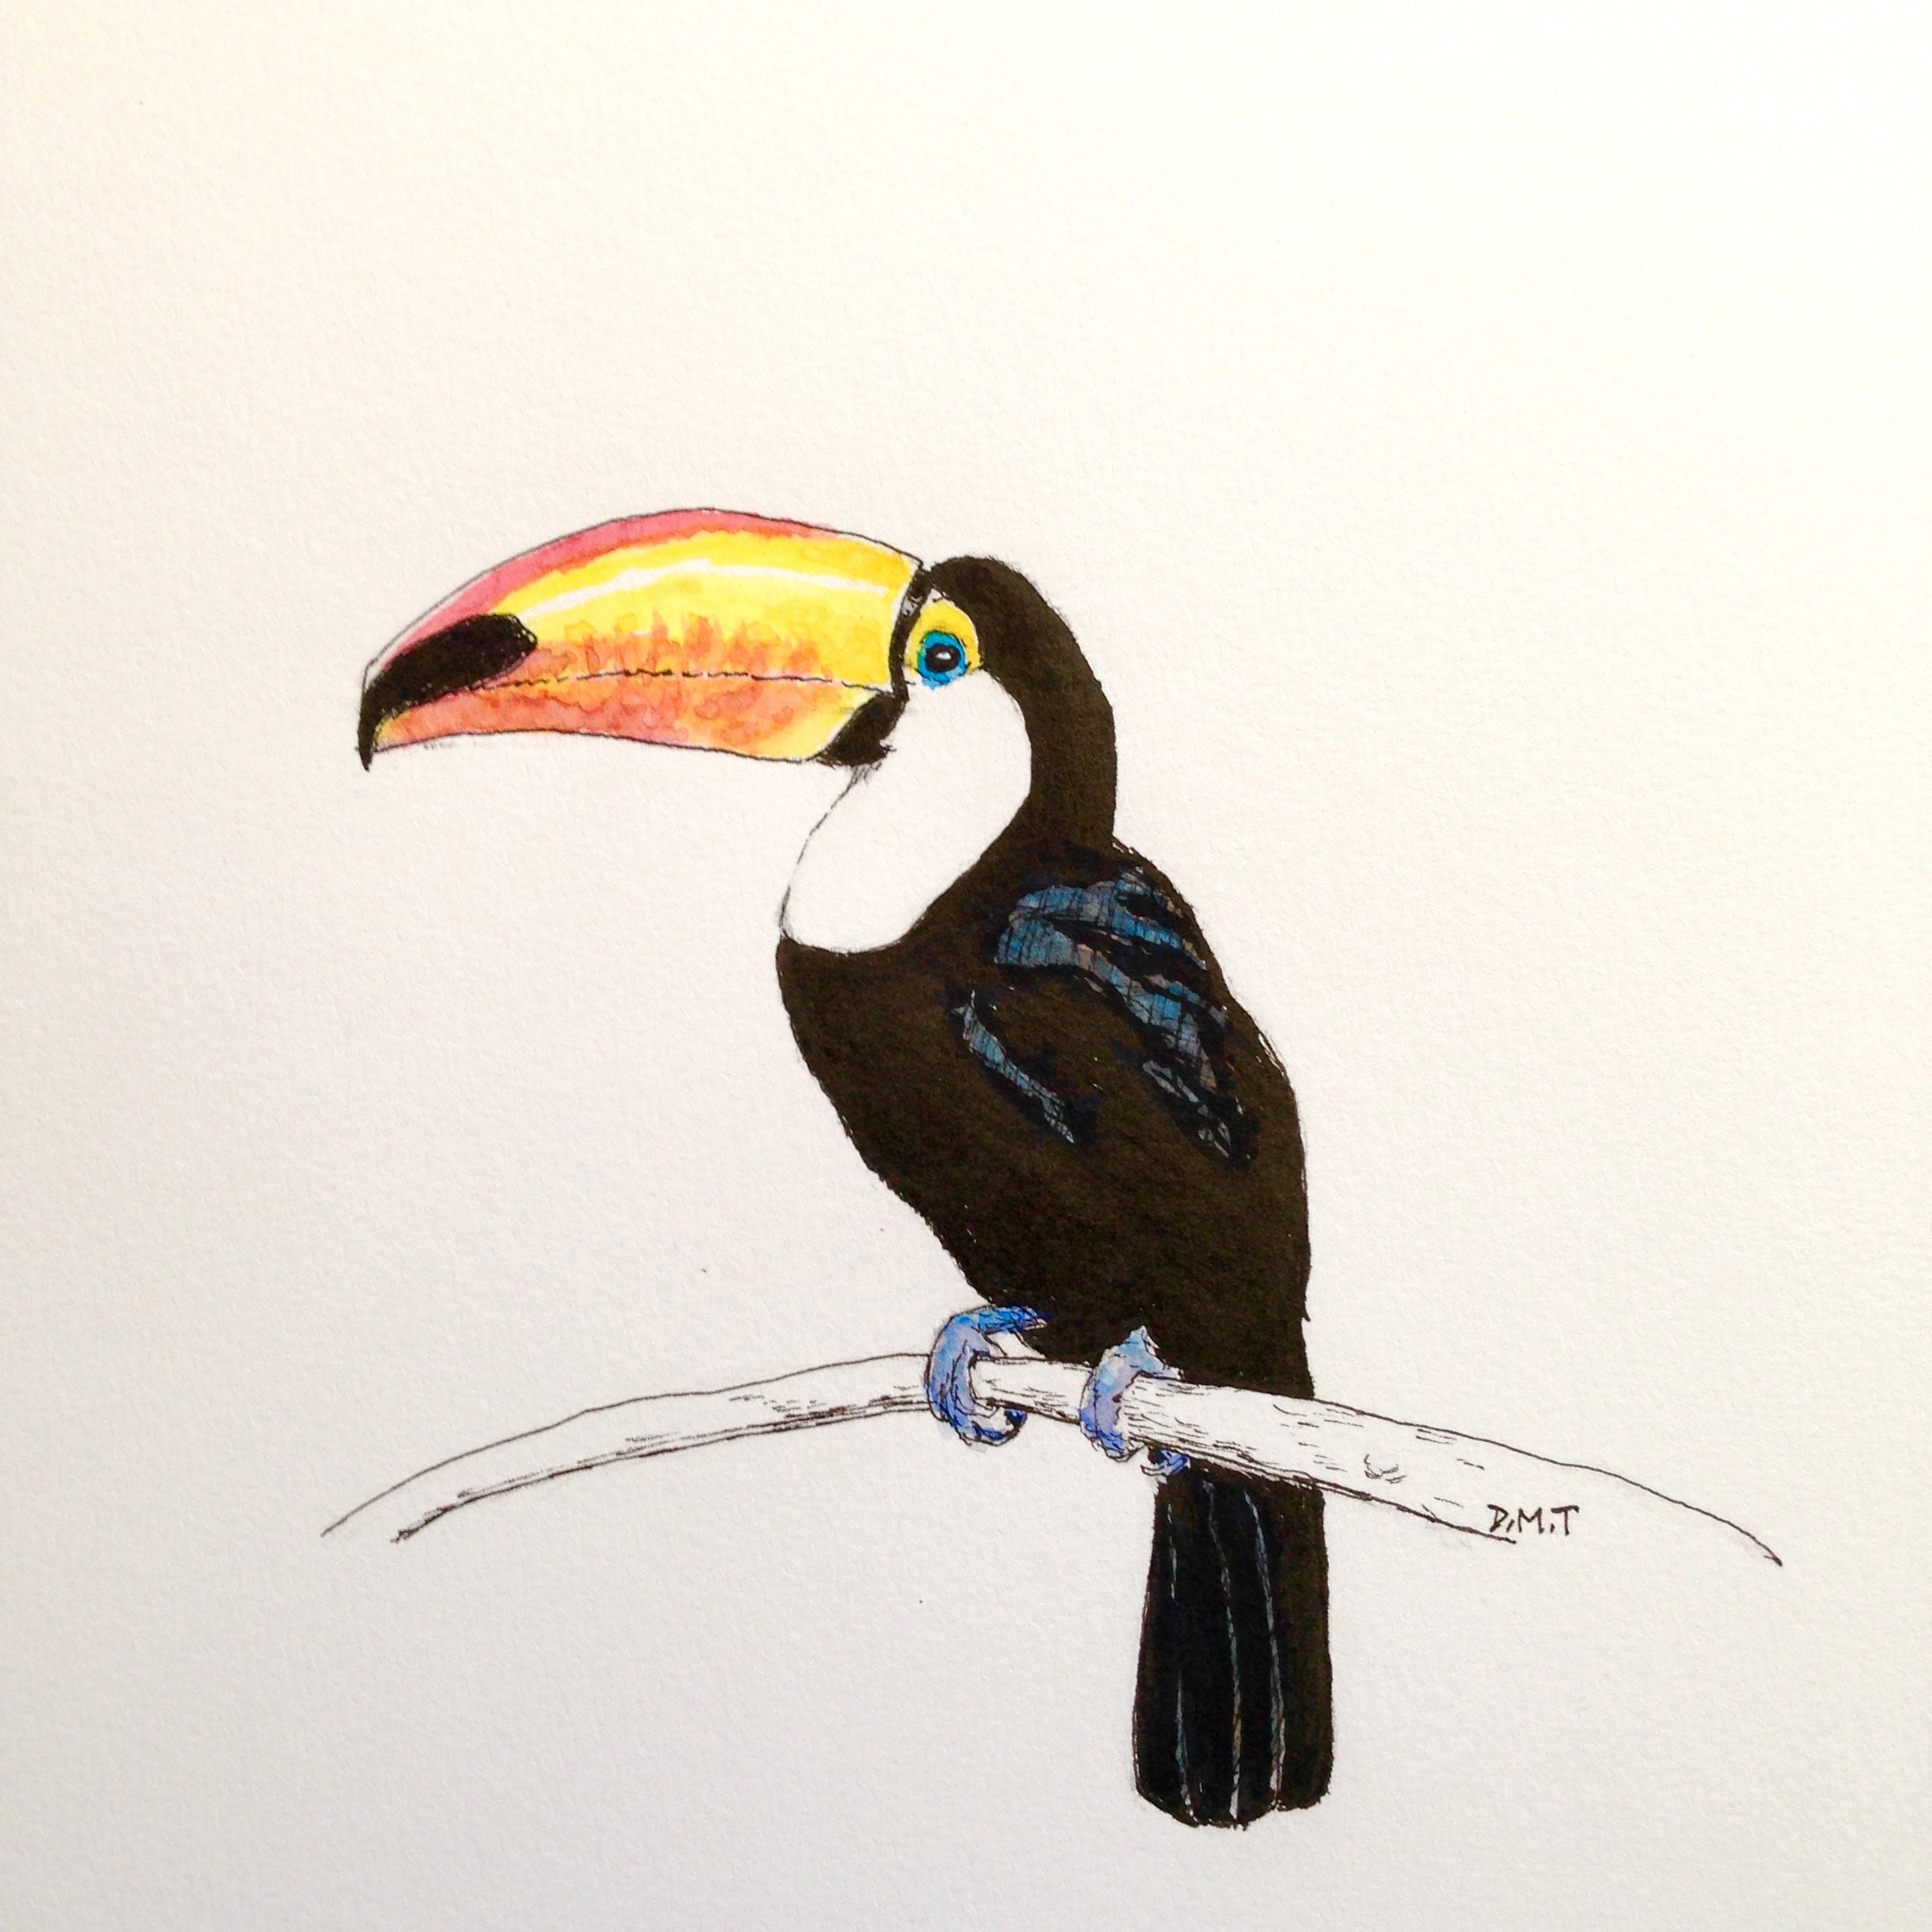 Toucan Bird Drawing Toucan – Dan Tabata